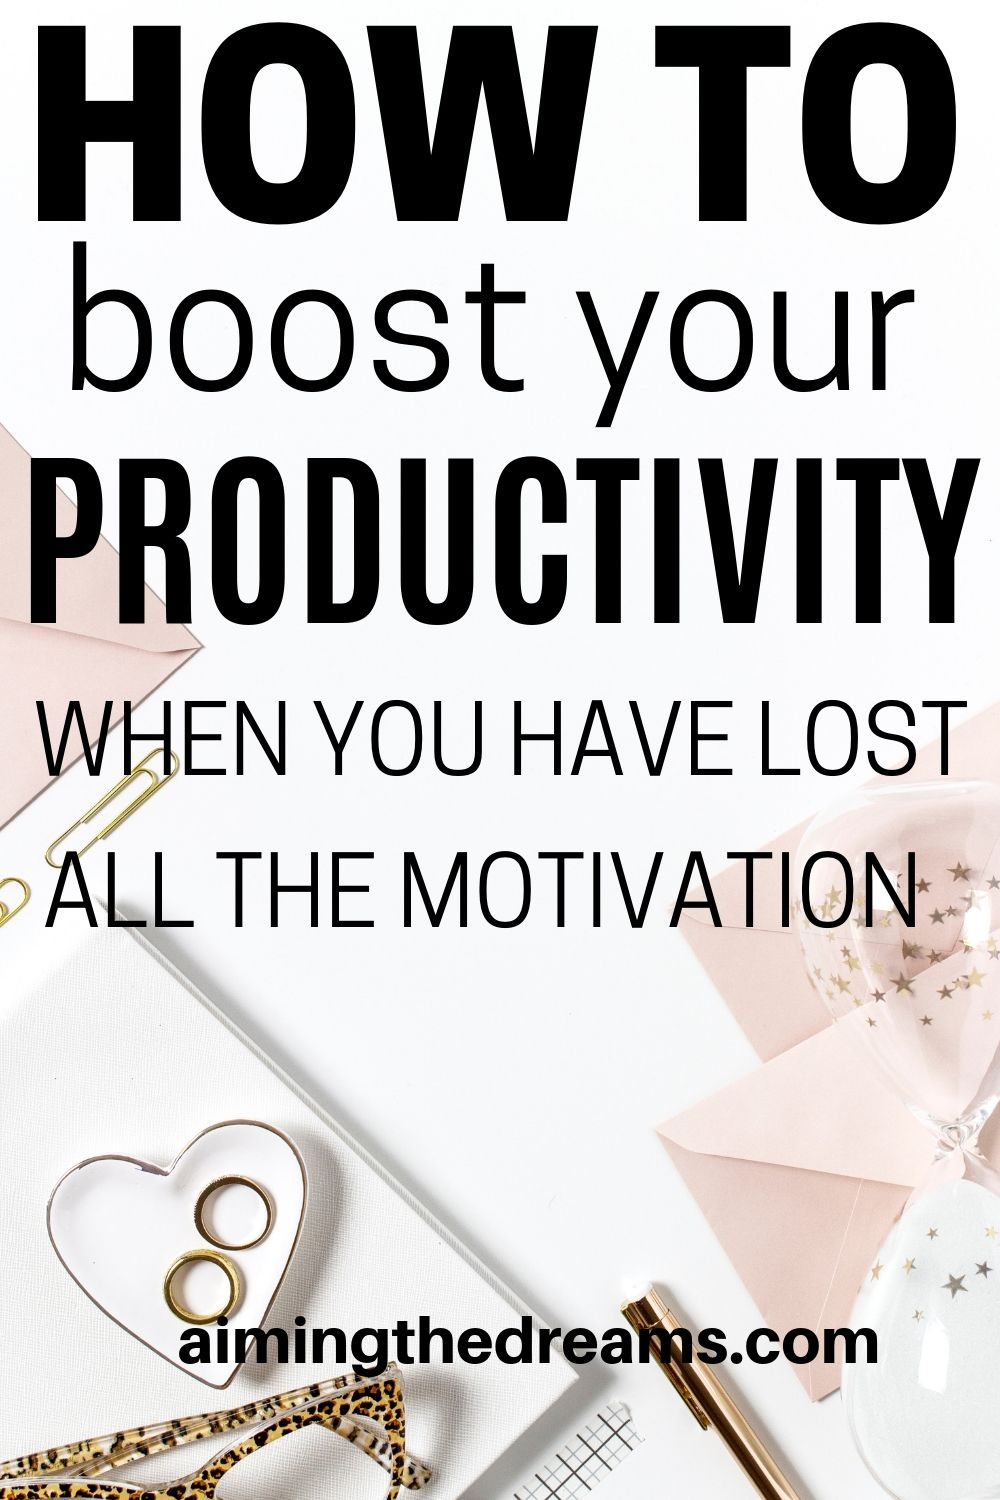 How to stay productive when you are not motivated to do anything